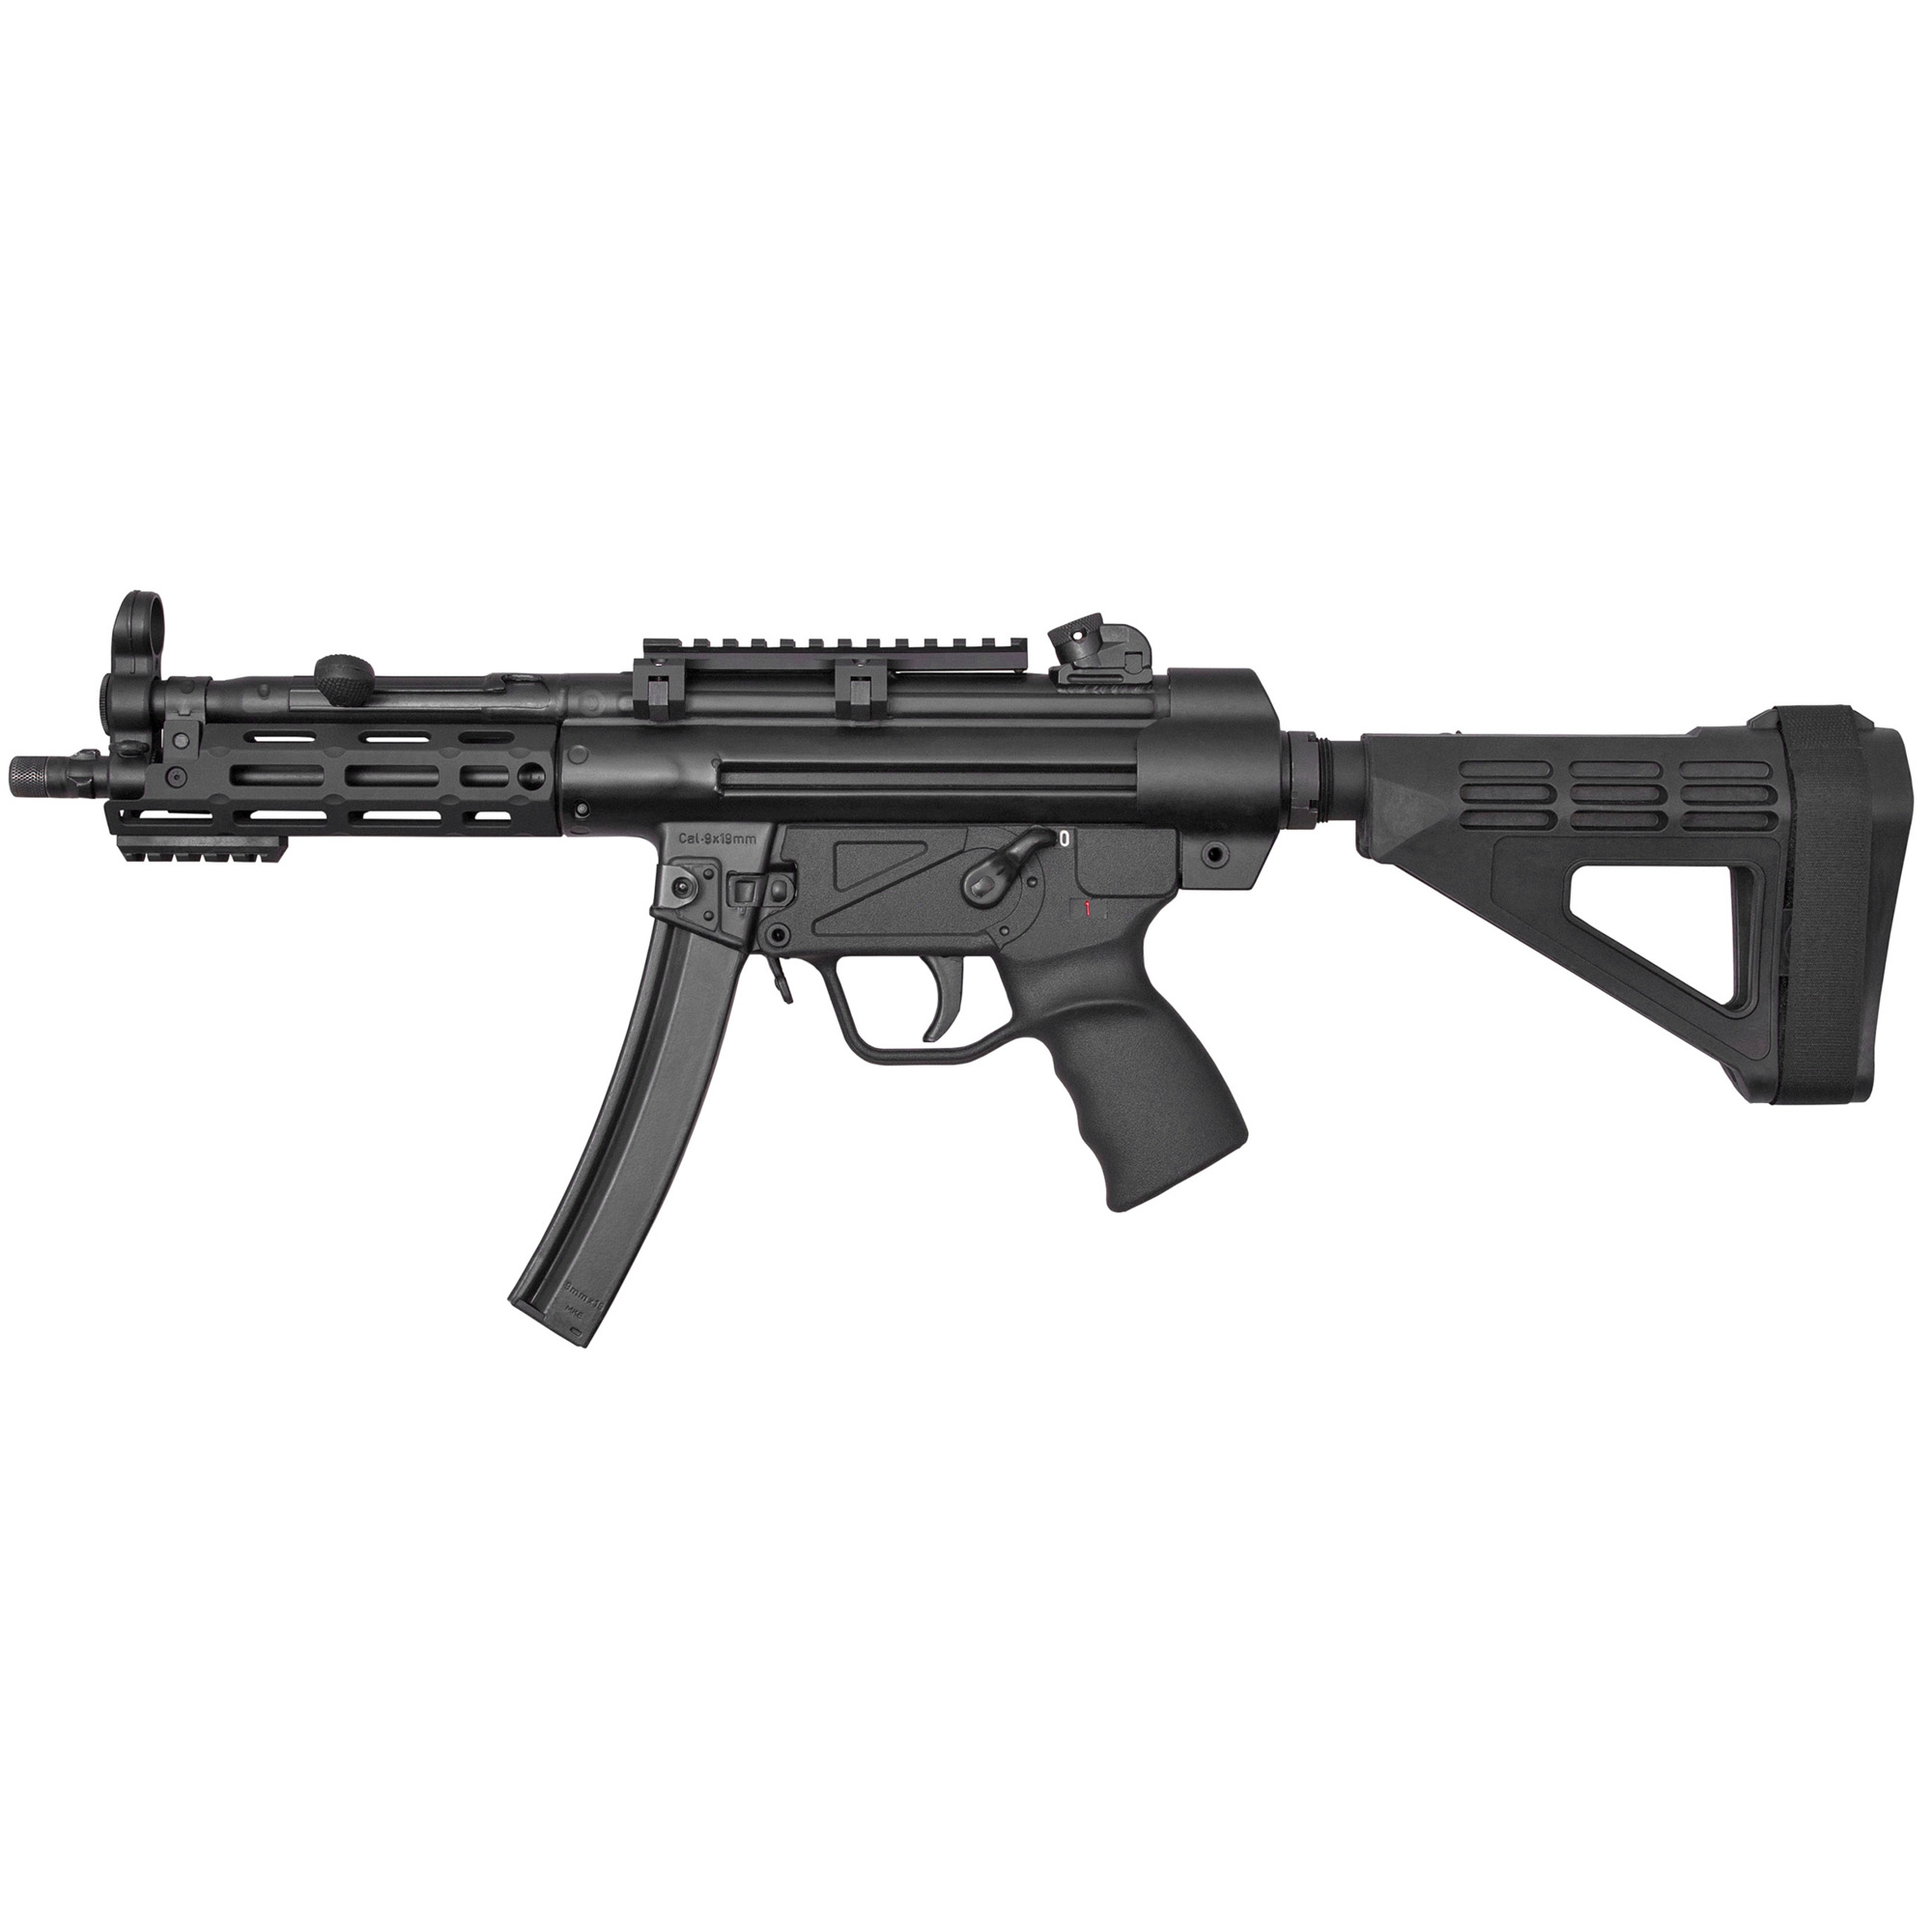 """The Z-5RS Pistolman is Zenith's Z-5RS outfitted with an M-LOK forearm and an AR-style fixed pistol brace. It is covered by a five-year warranty"""" and ships in an MKE hard case with a receiver end cap"""" a Picatinny optic rail"""" three magazines"""" a military-style sling"""" two extra takedown pins"""" a cleaning kit"""" and a user manual."""